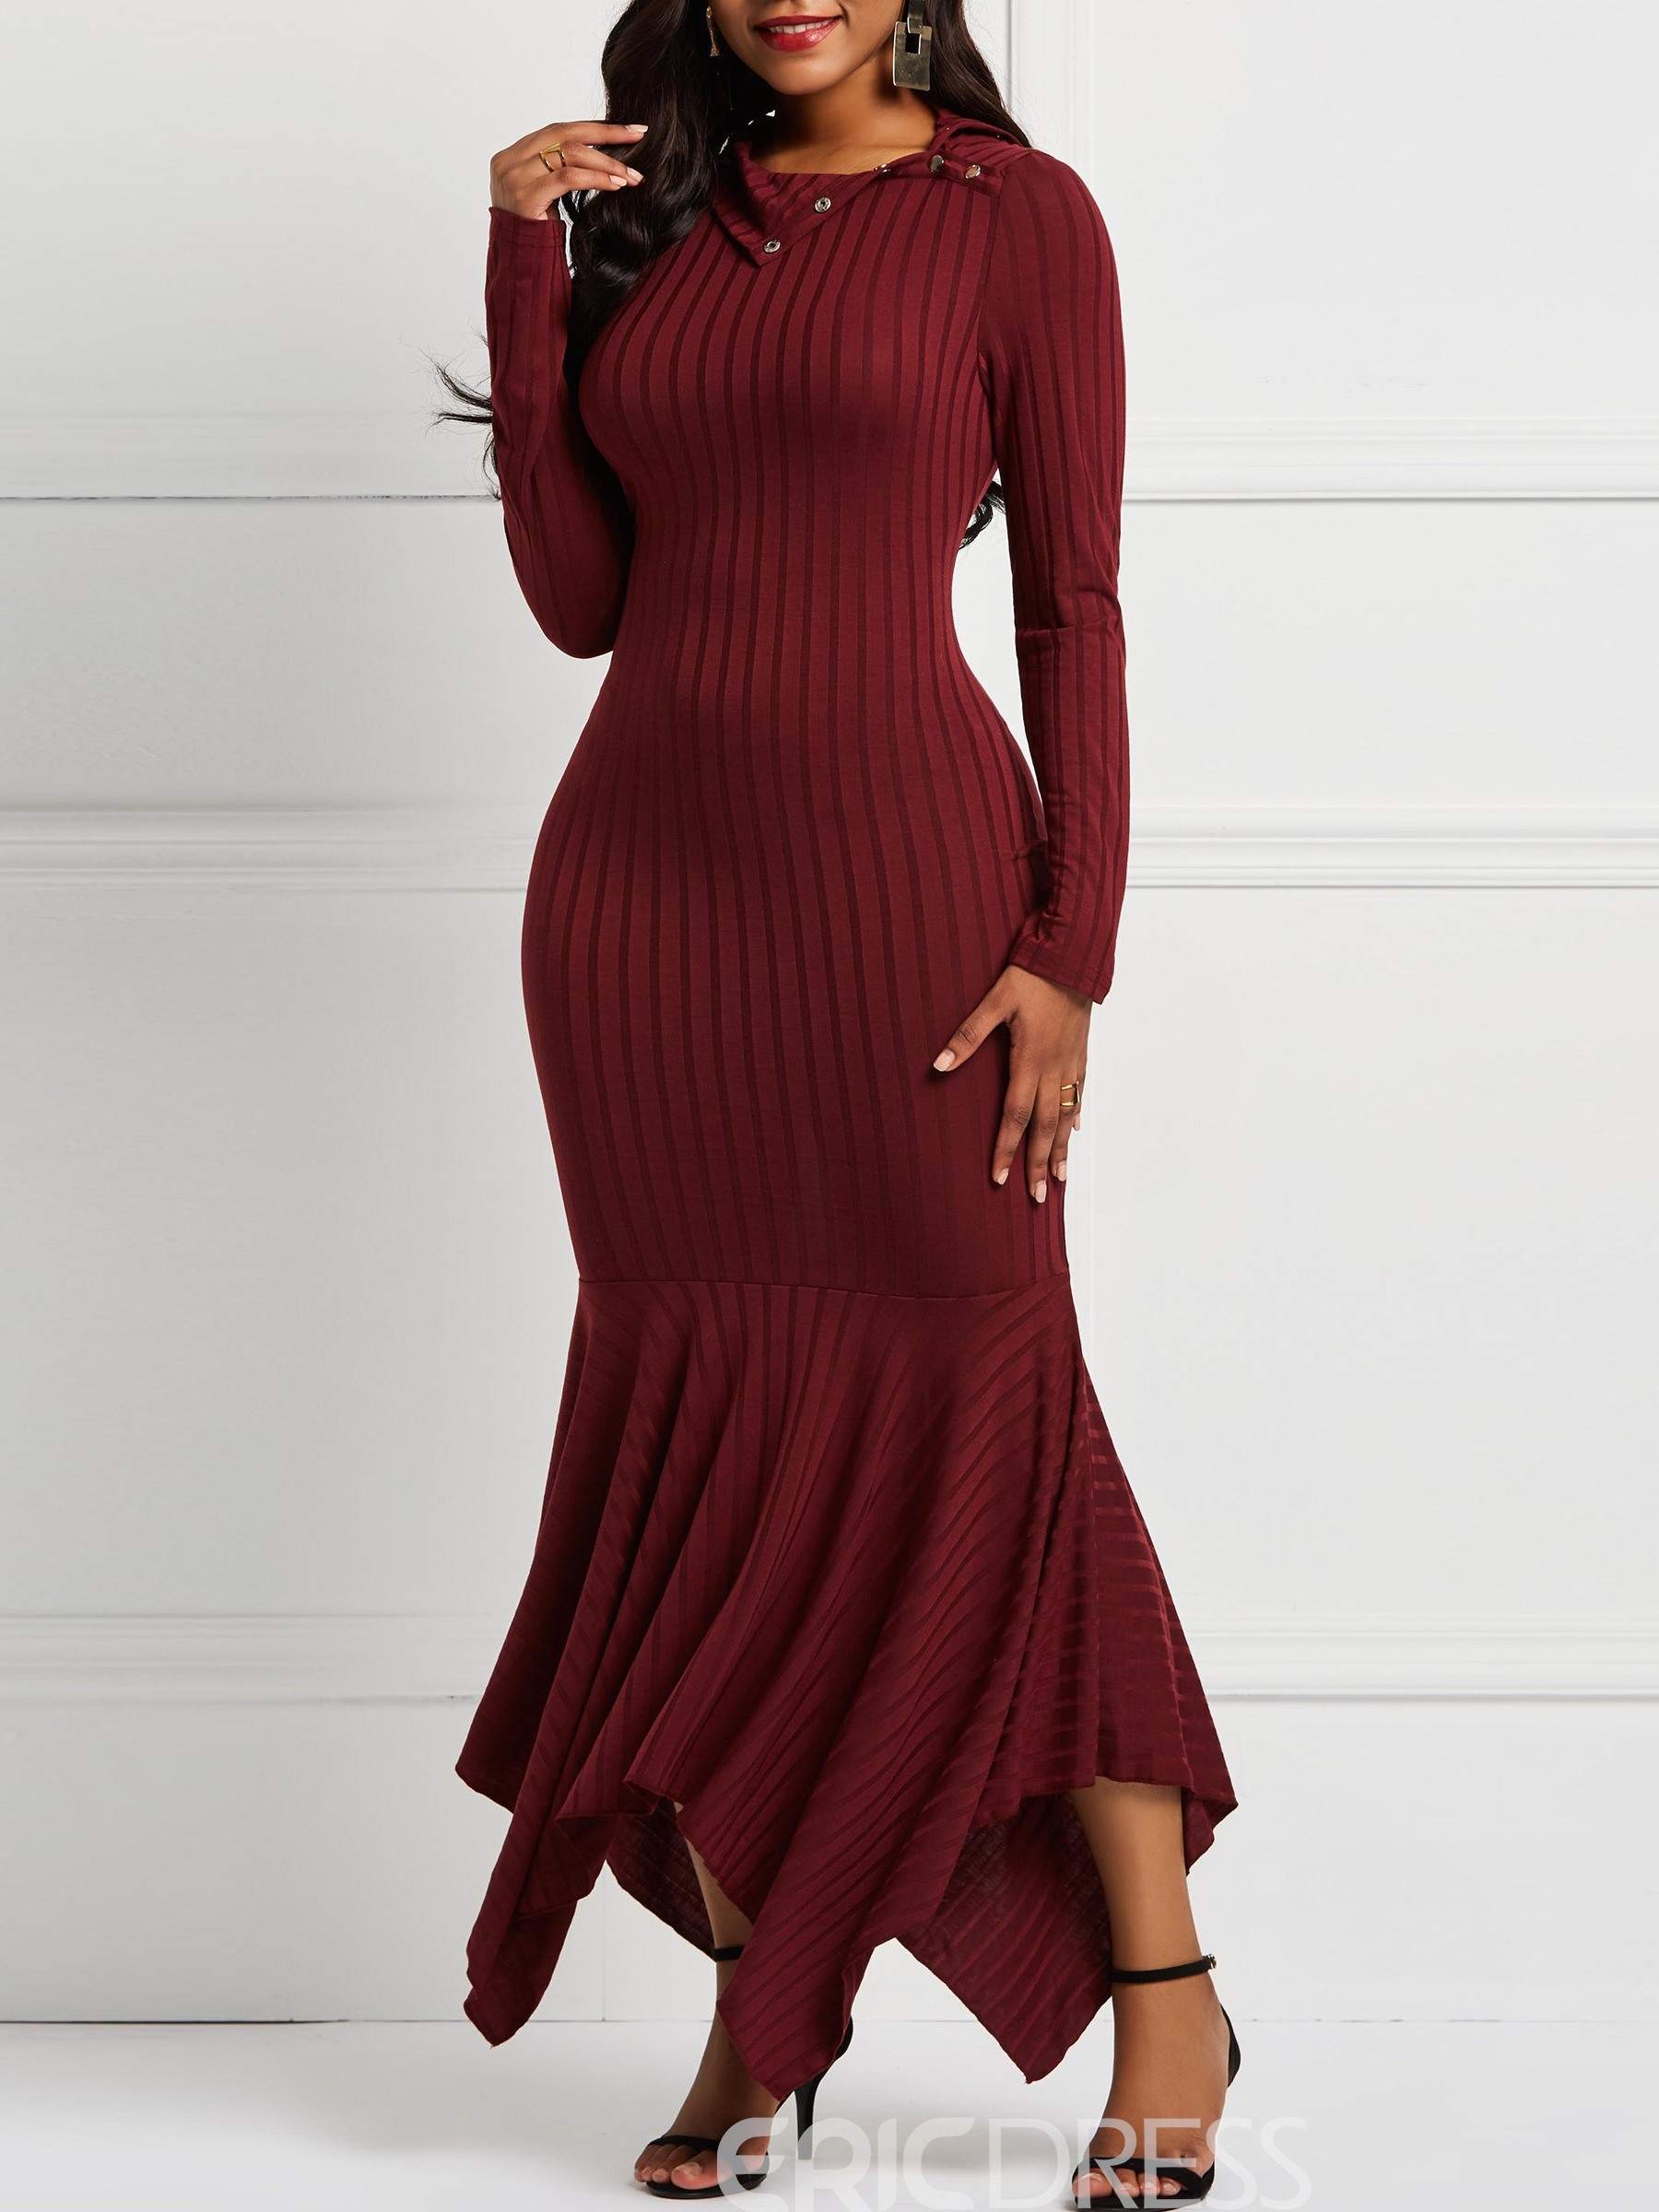 Ericdress Mermaid Long Sleeve Pullover Plain Elegant Sweater Dresses